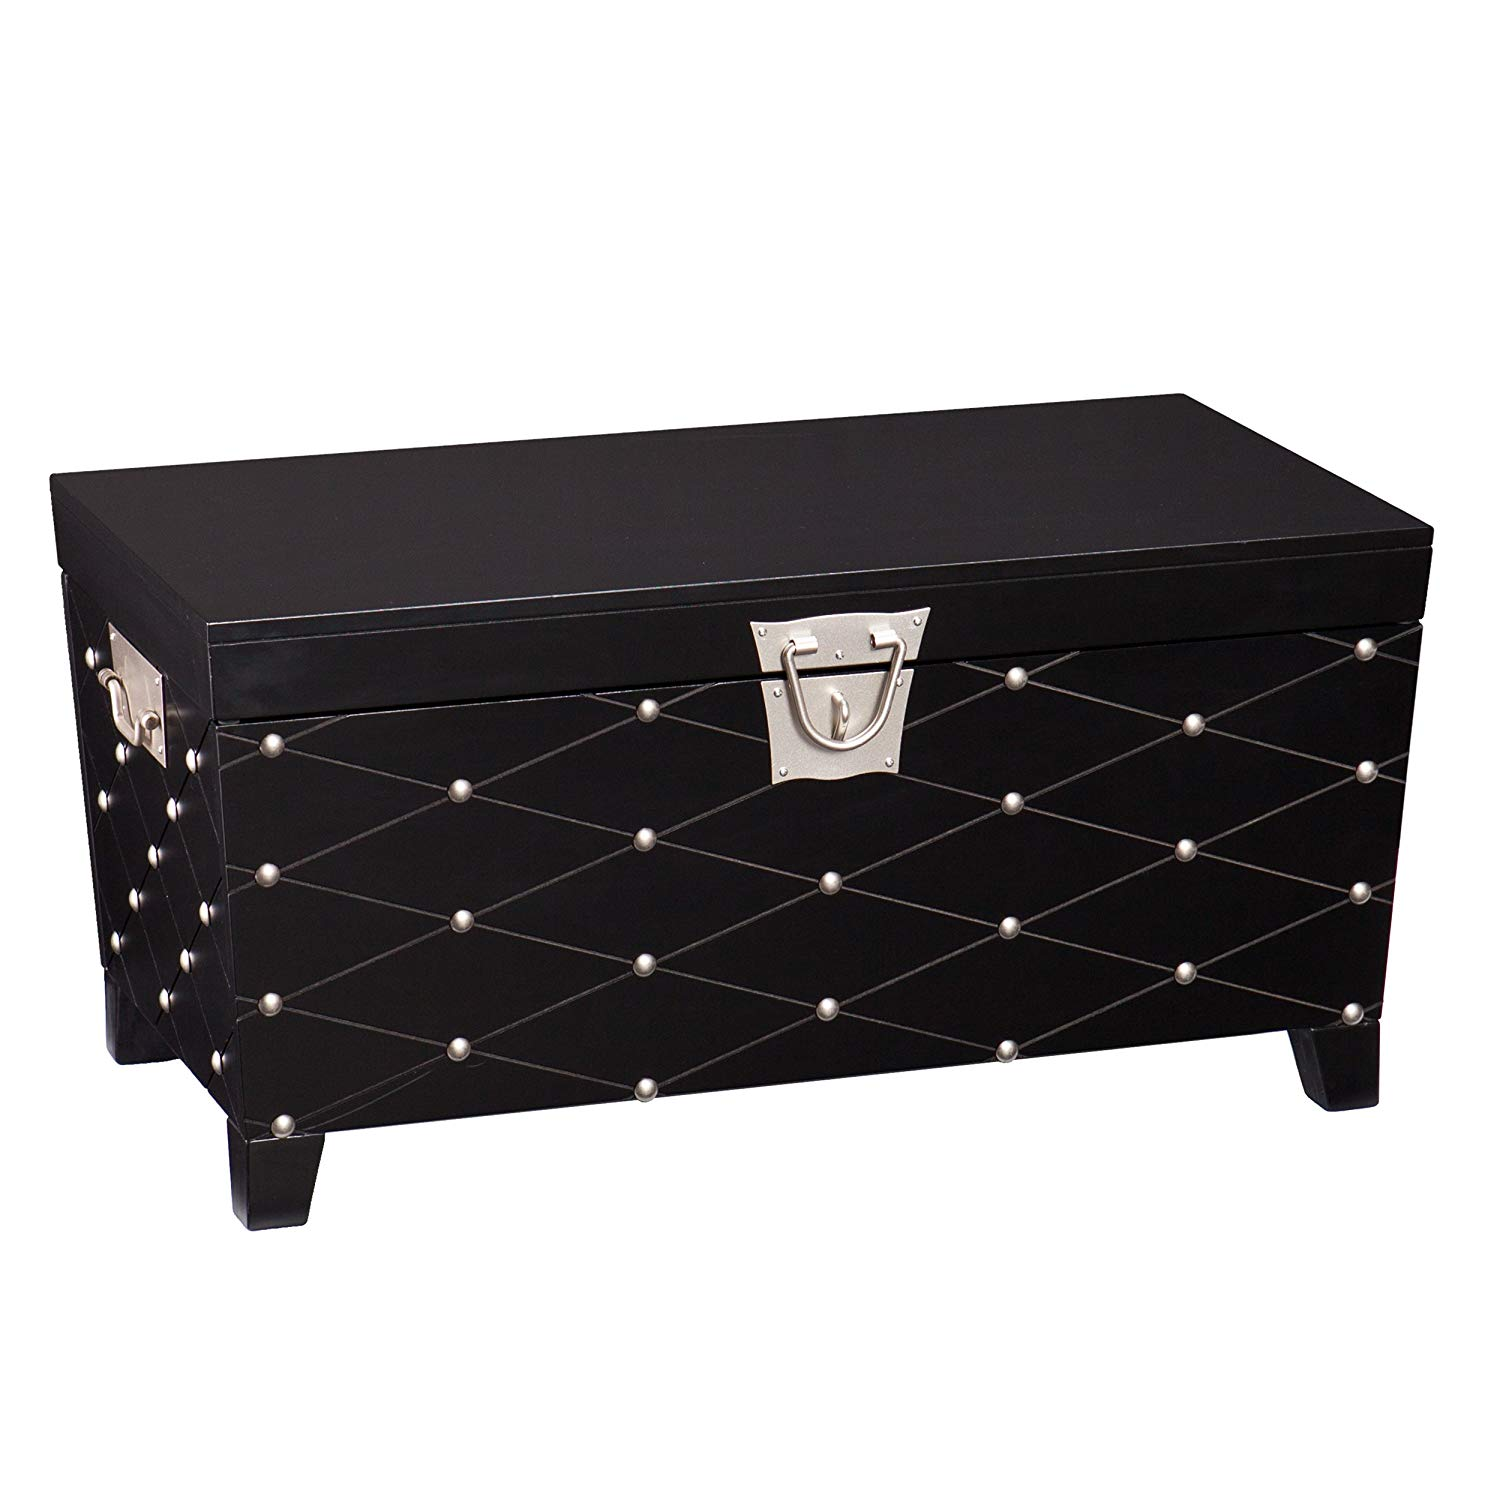 southern enterprises nailhead cocktail table storage diamond mirrored accent trunk black and satin silver finish kitchen dining ikea bedroom cupboards round end tables hollywood